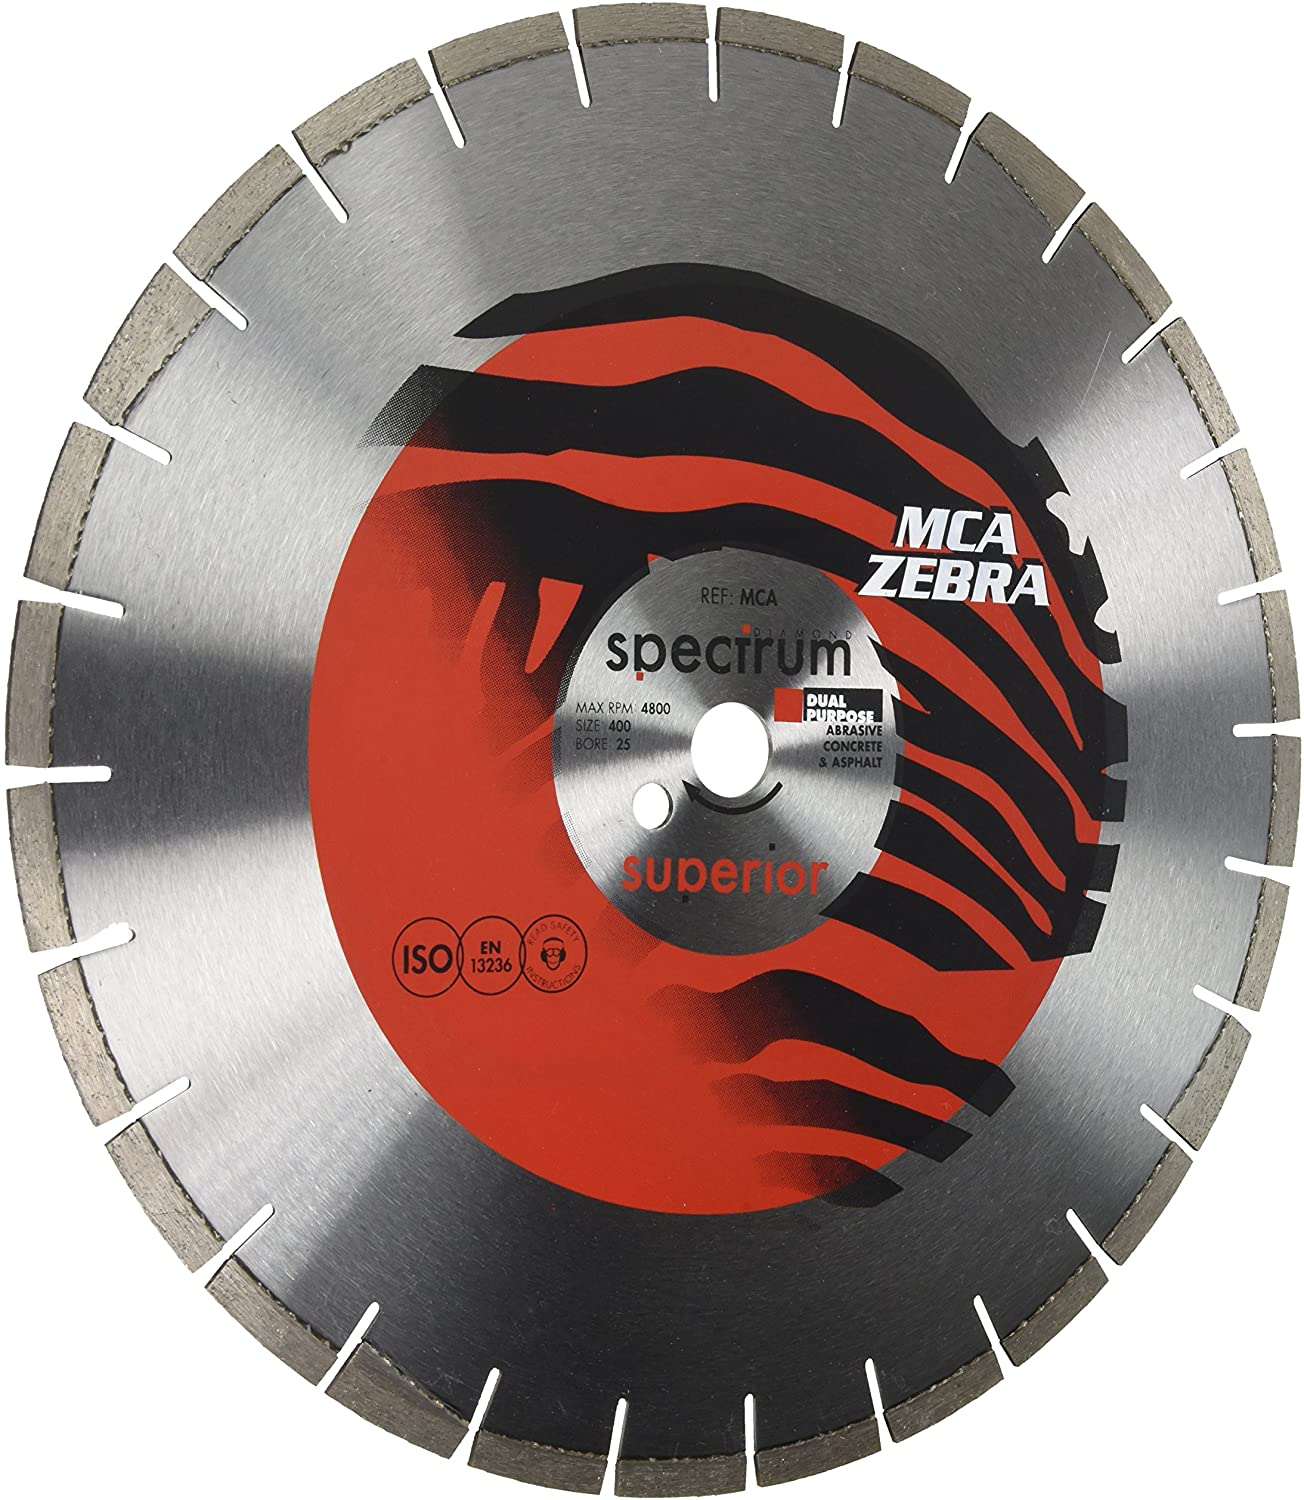 OX Tools MCA400/25 Spectrum Superior Zebra Dia Blade-Abrasive-400/25.4mm Diamond Blade, Multi-Colour, 400/25.4 mm